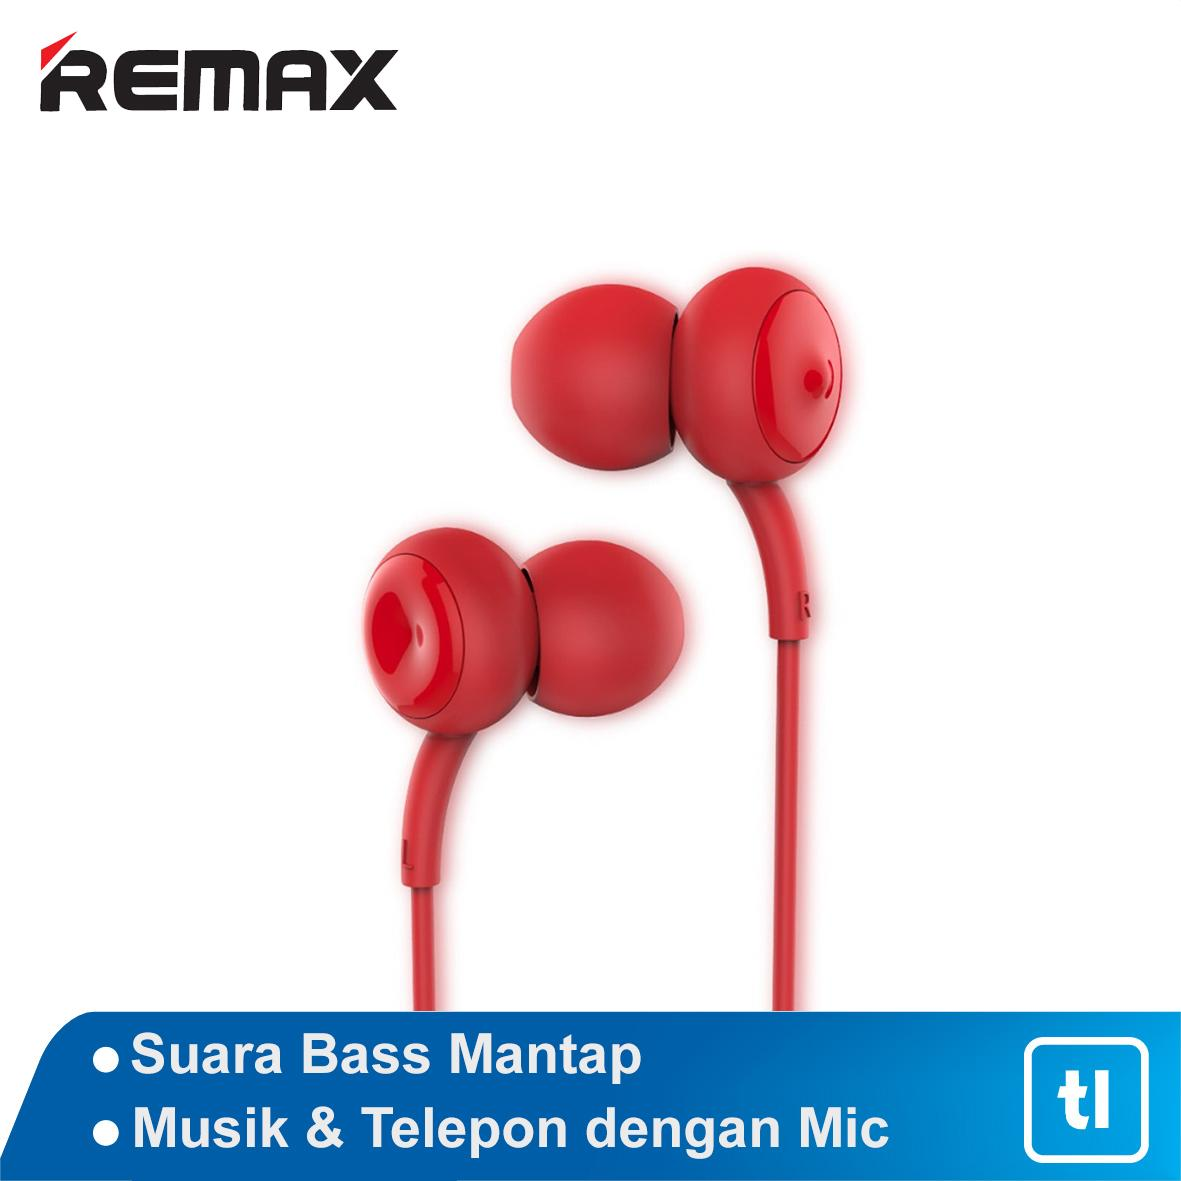 Remax Touch Music Wired Headset Earphone RM 510 HD Microphone Garansi Resmi / Earphone Murah /